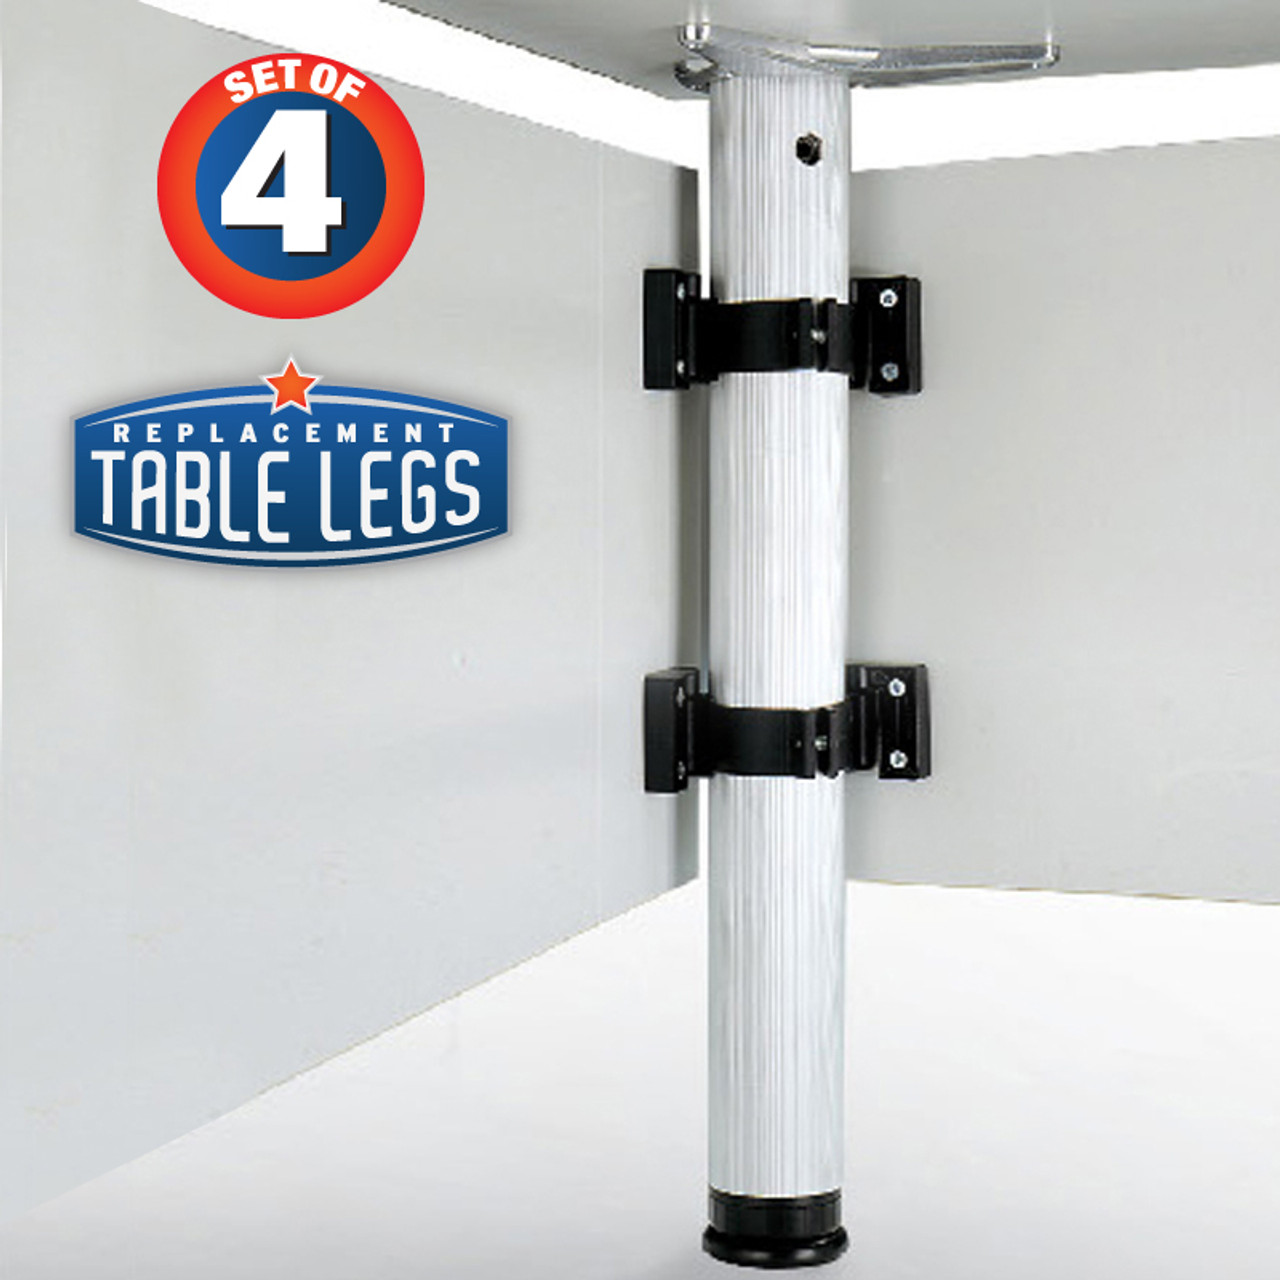 """Modesty Panel Clips, for 2-3/8"""" Table Legs attached to a desk - replacementtablelegs.com"""